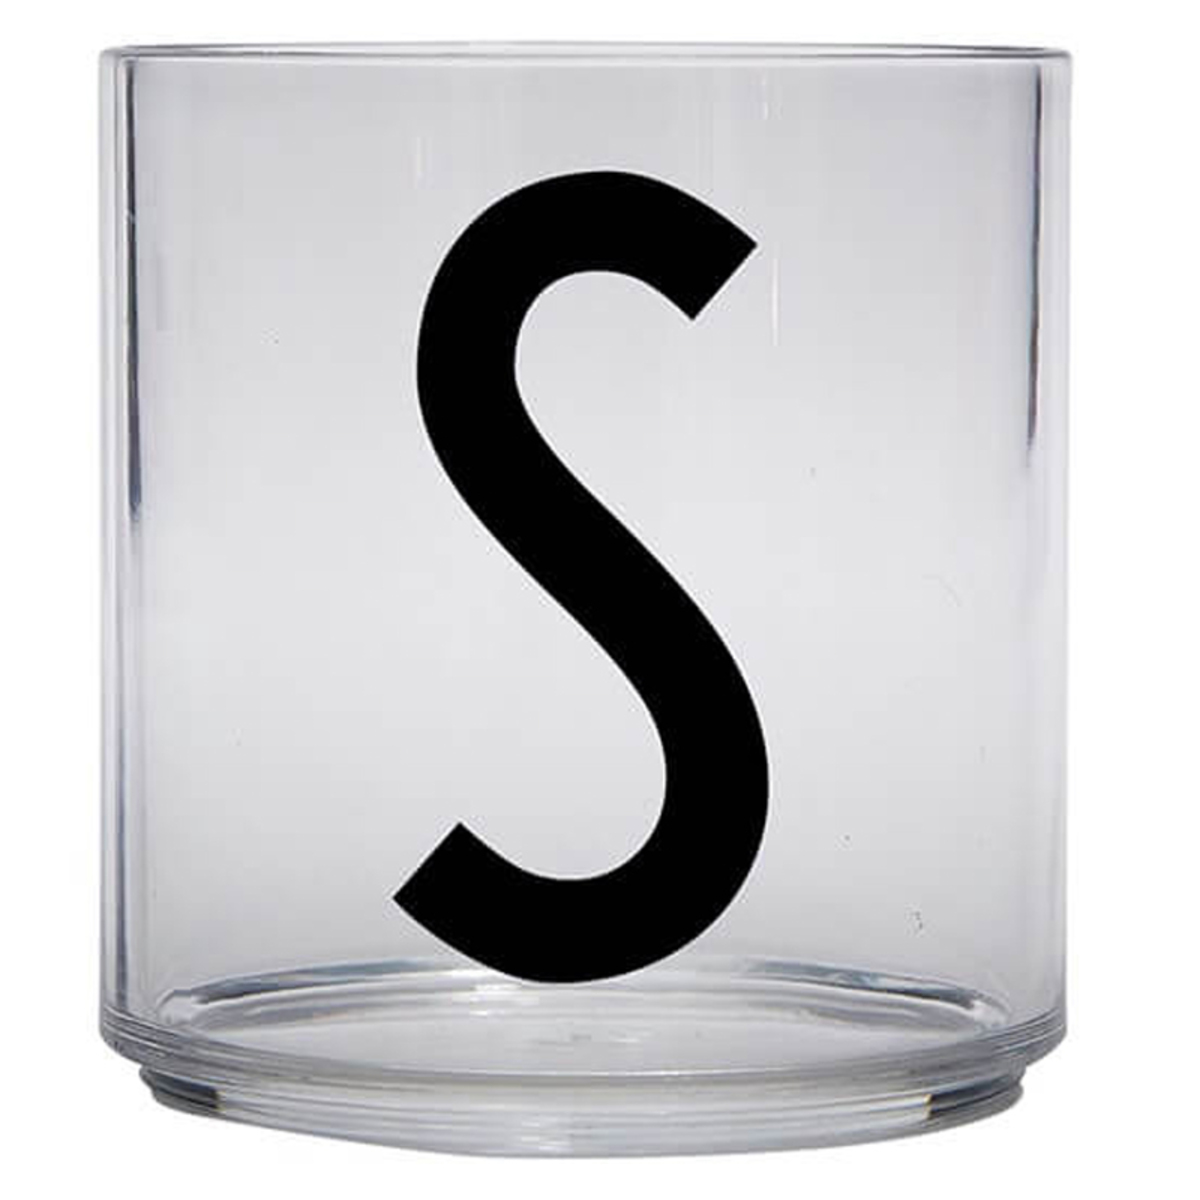 Tasse & Verre Verre Transparent S - 220 ml Verre Transparent S - 220 ml